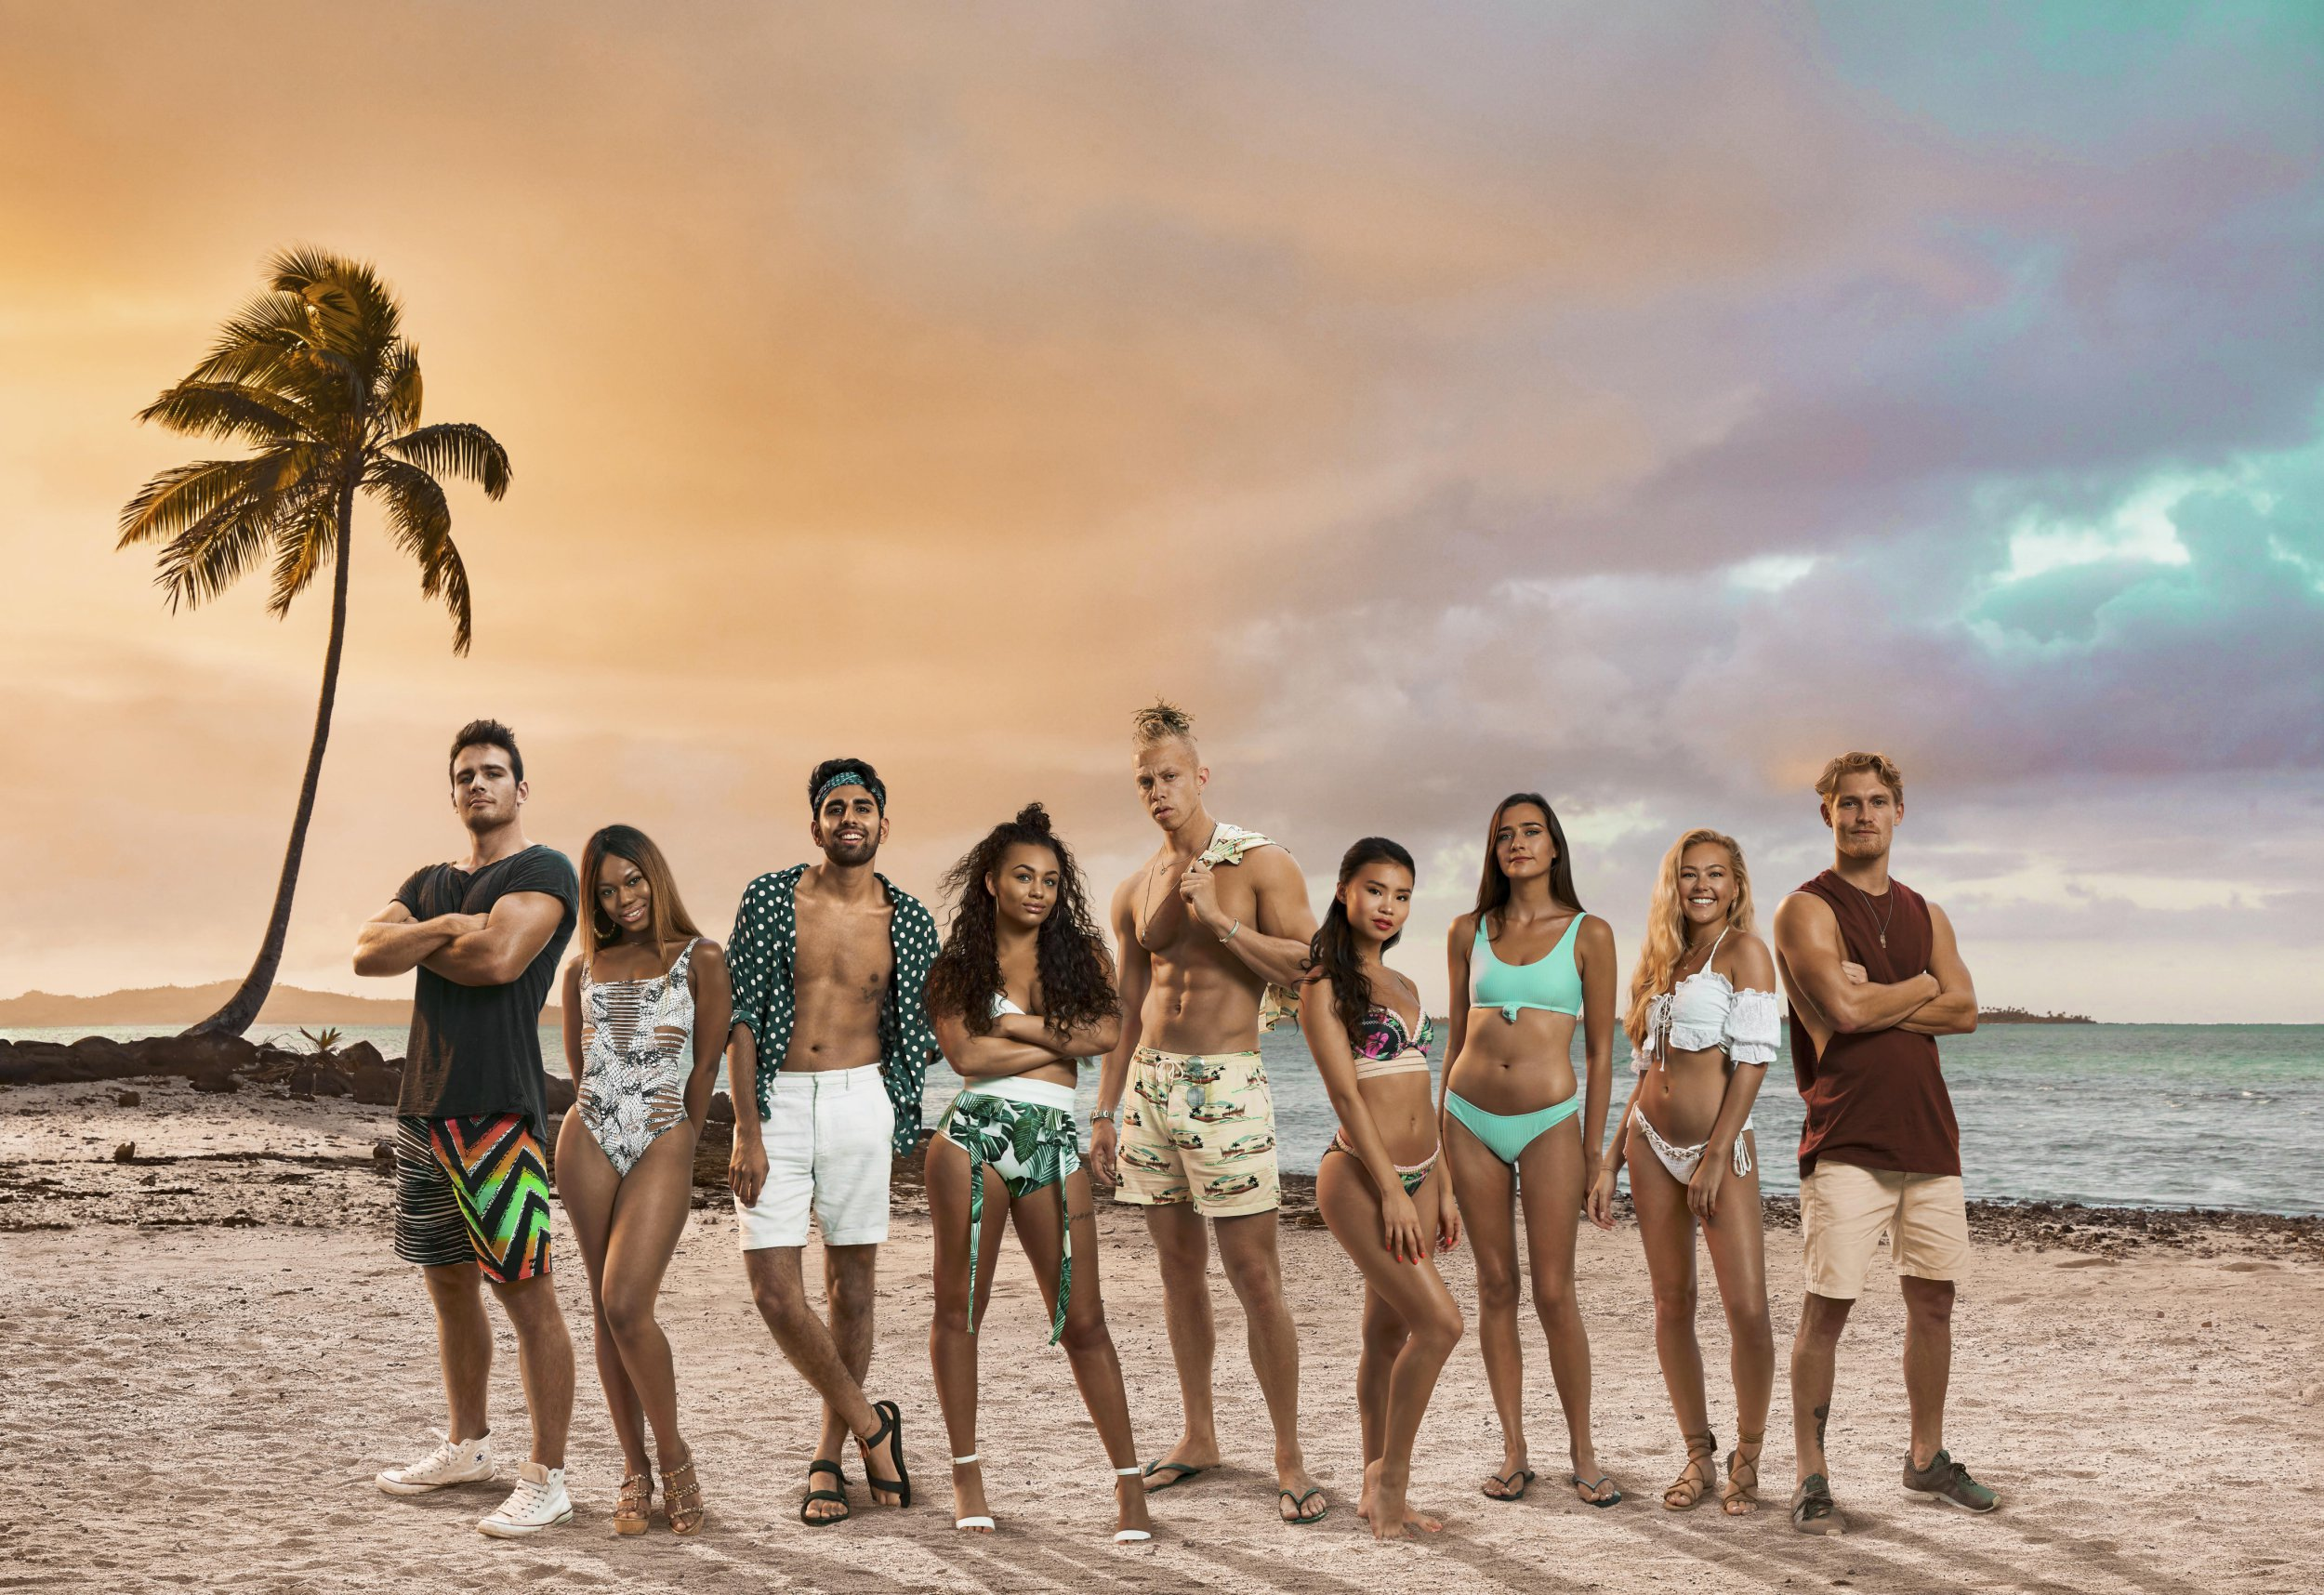 Shipwrecked's 2019 contestants Tom, Big T, Kush, Liv, Chris, Khalia, Emma, Hollie and Harry